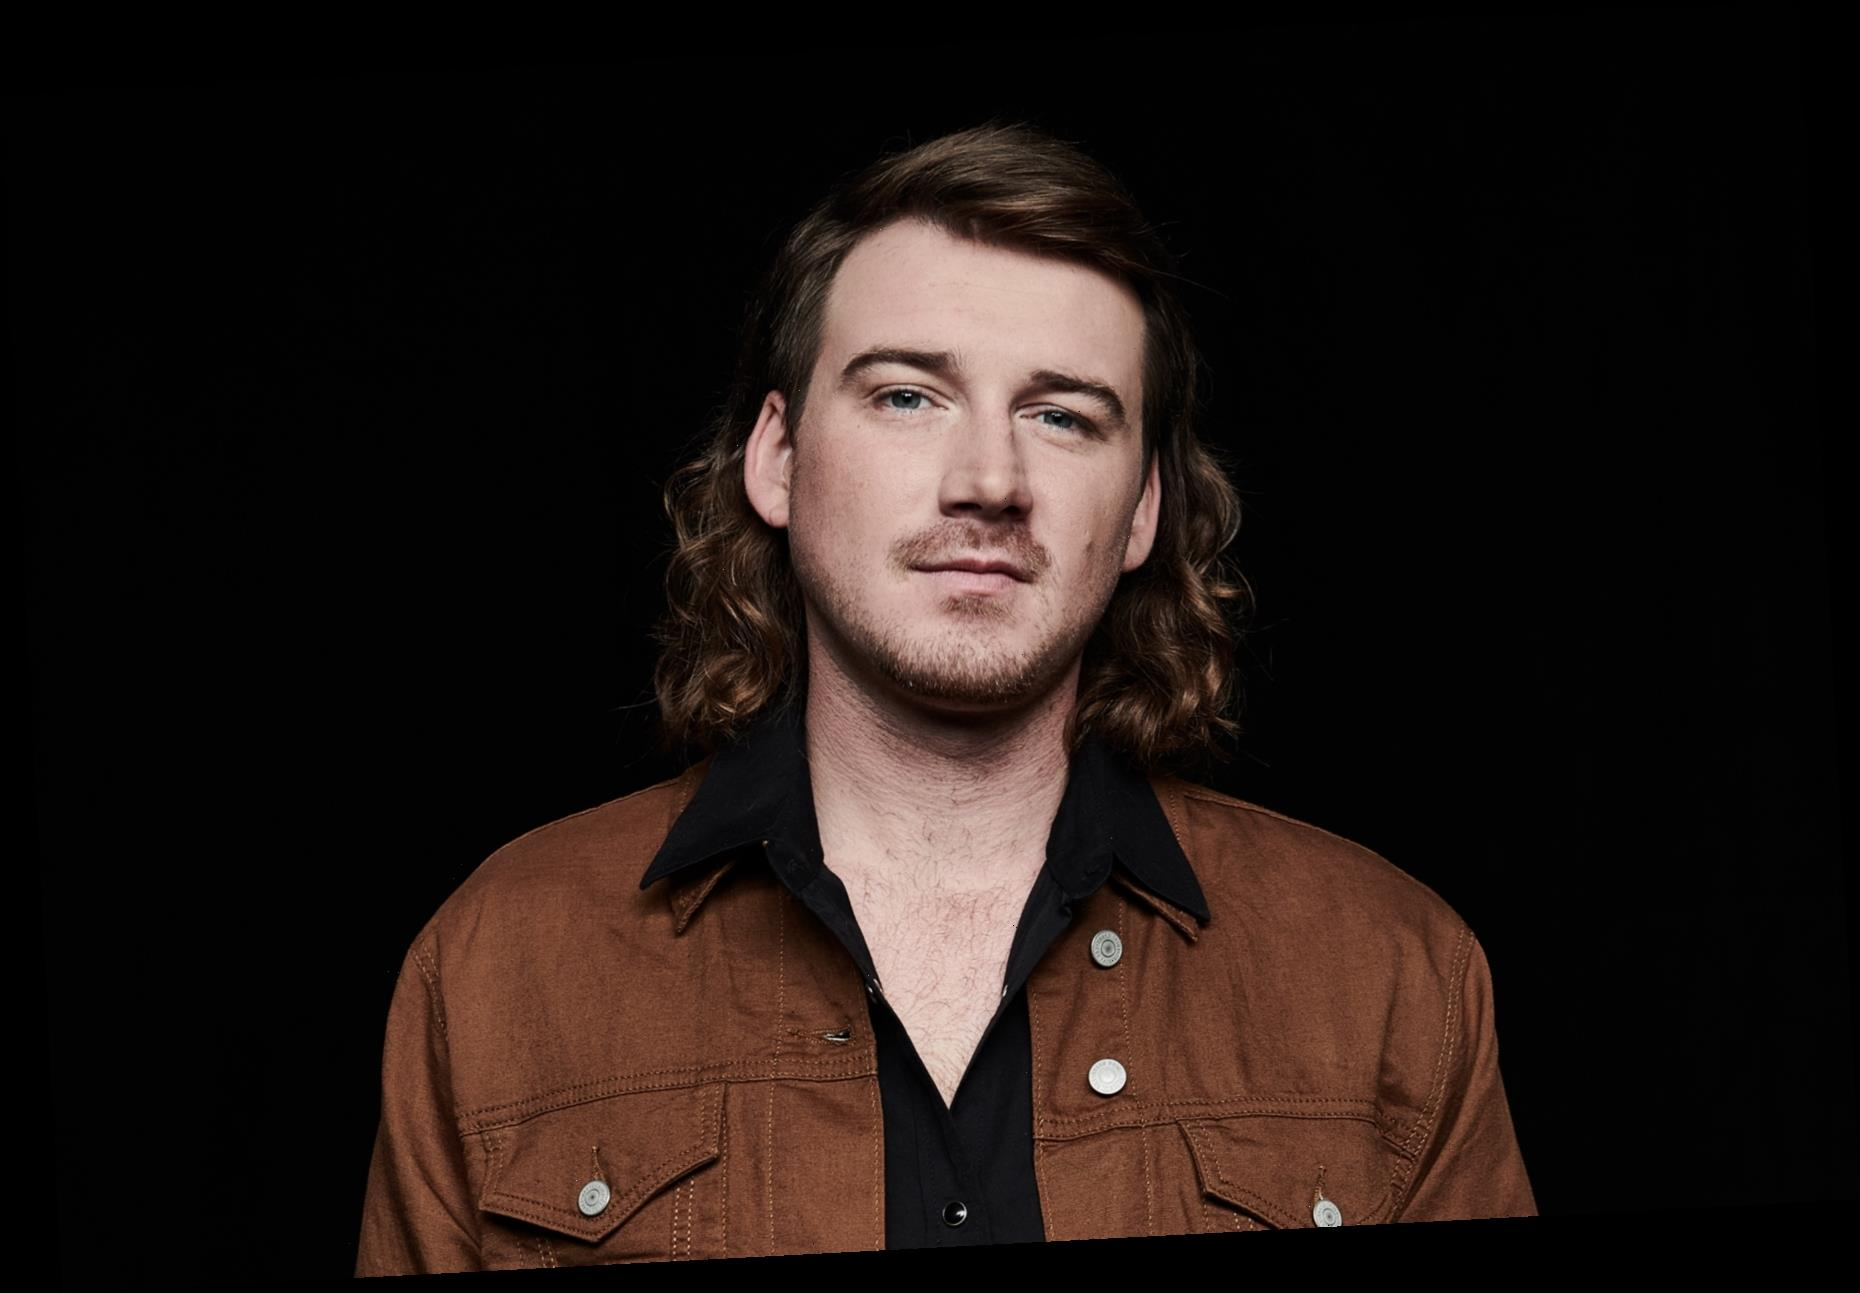 RS Charts: Morgan Wallen Remains at Number One on Artists 500 Amid Controversy